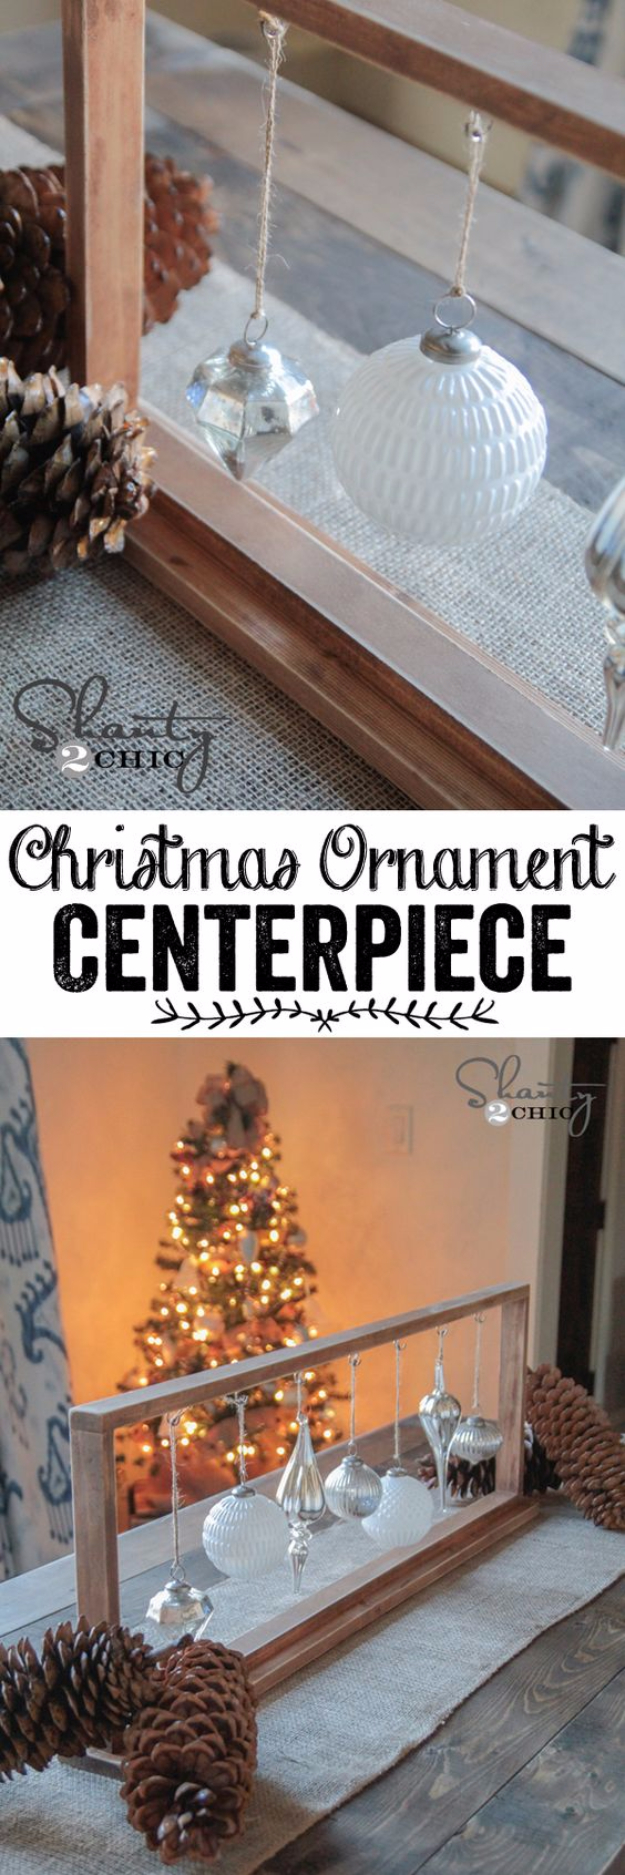 DIY Christmas Centerpieces - DIY Christmas Ornament Centerpiece - Simple, Easy Holiday Decorating Ideas on A Budget - Cheap Home and Table Decor for The Holidays - Dollar Store Crafts, Rustic Candles, Pine Cones, Floral Ideas and Mason Jar Craft Projects http://diyjoy.com/diy-christmas-centerpieces